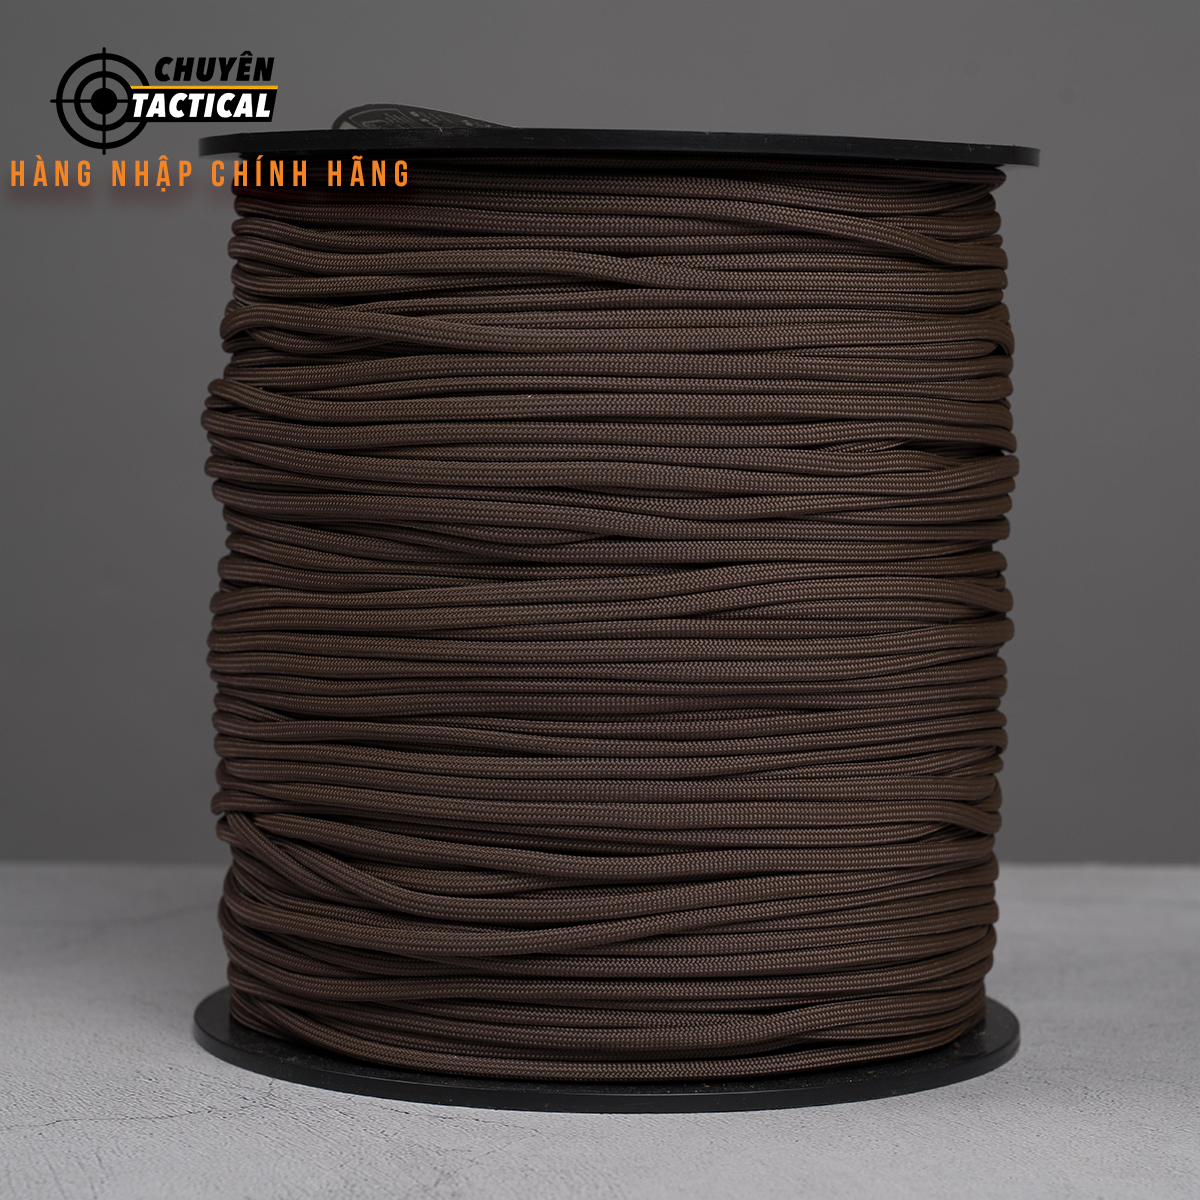 1m - Dây Paracord 550 - Brown